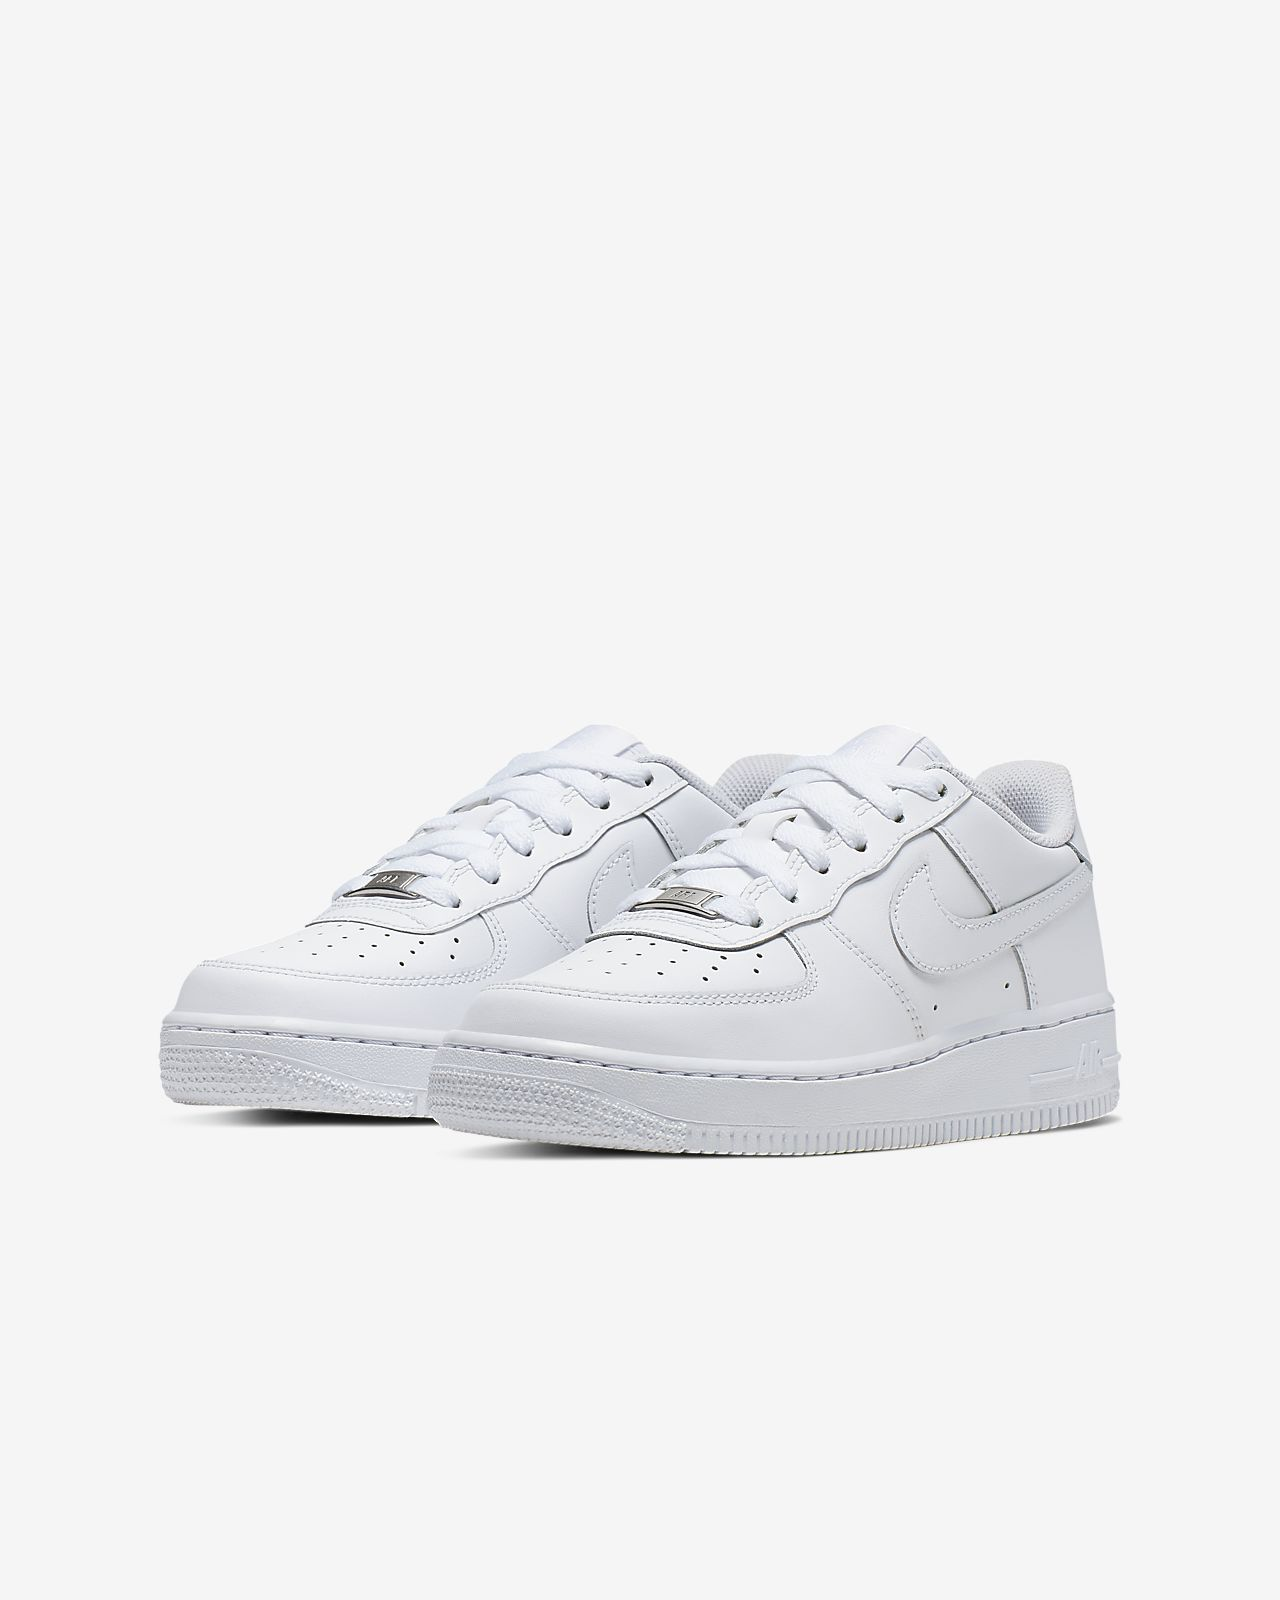 Nike Air Force 1 Ultra Offers Boys Nike Shoes WhiteWhite